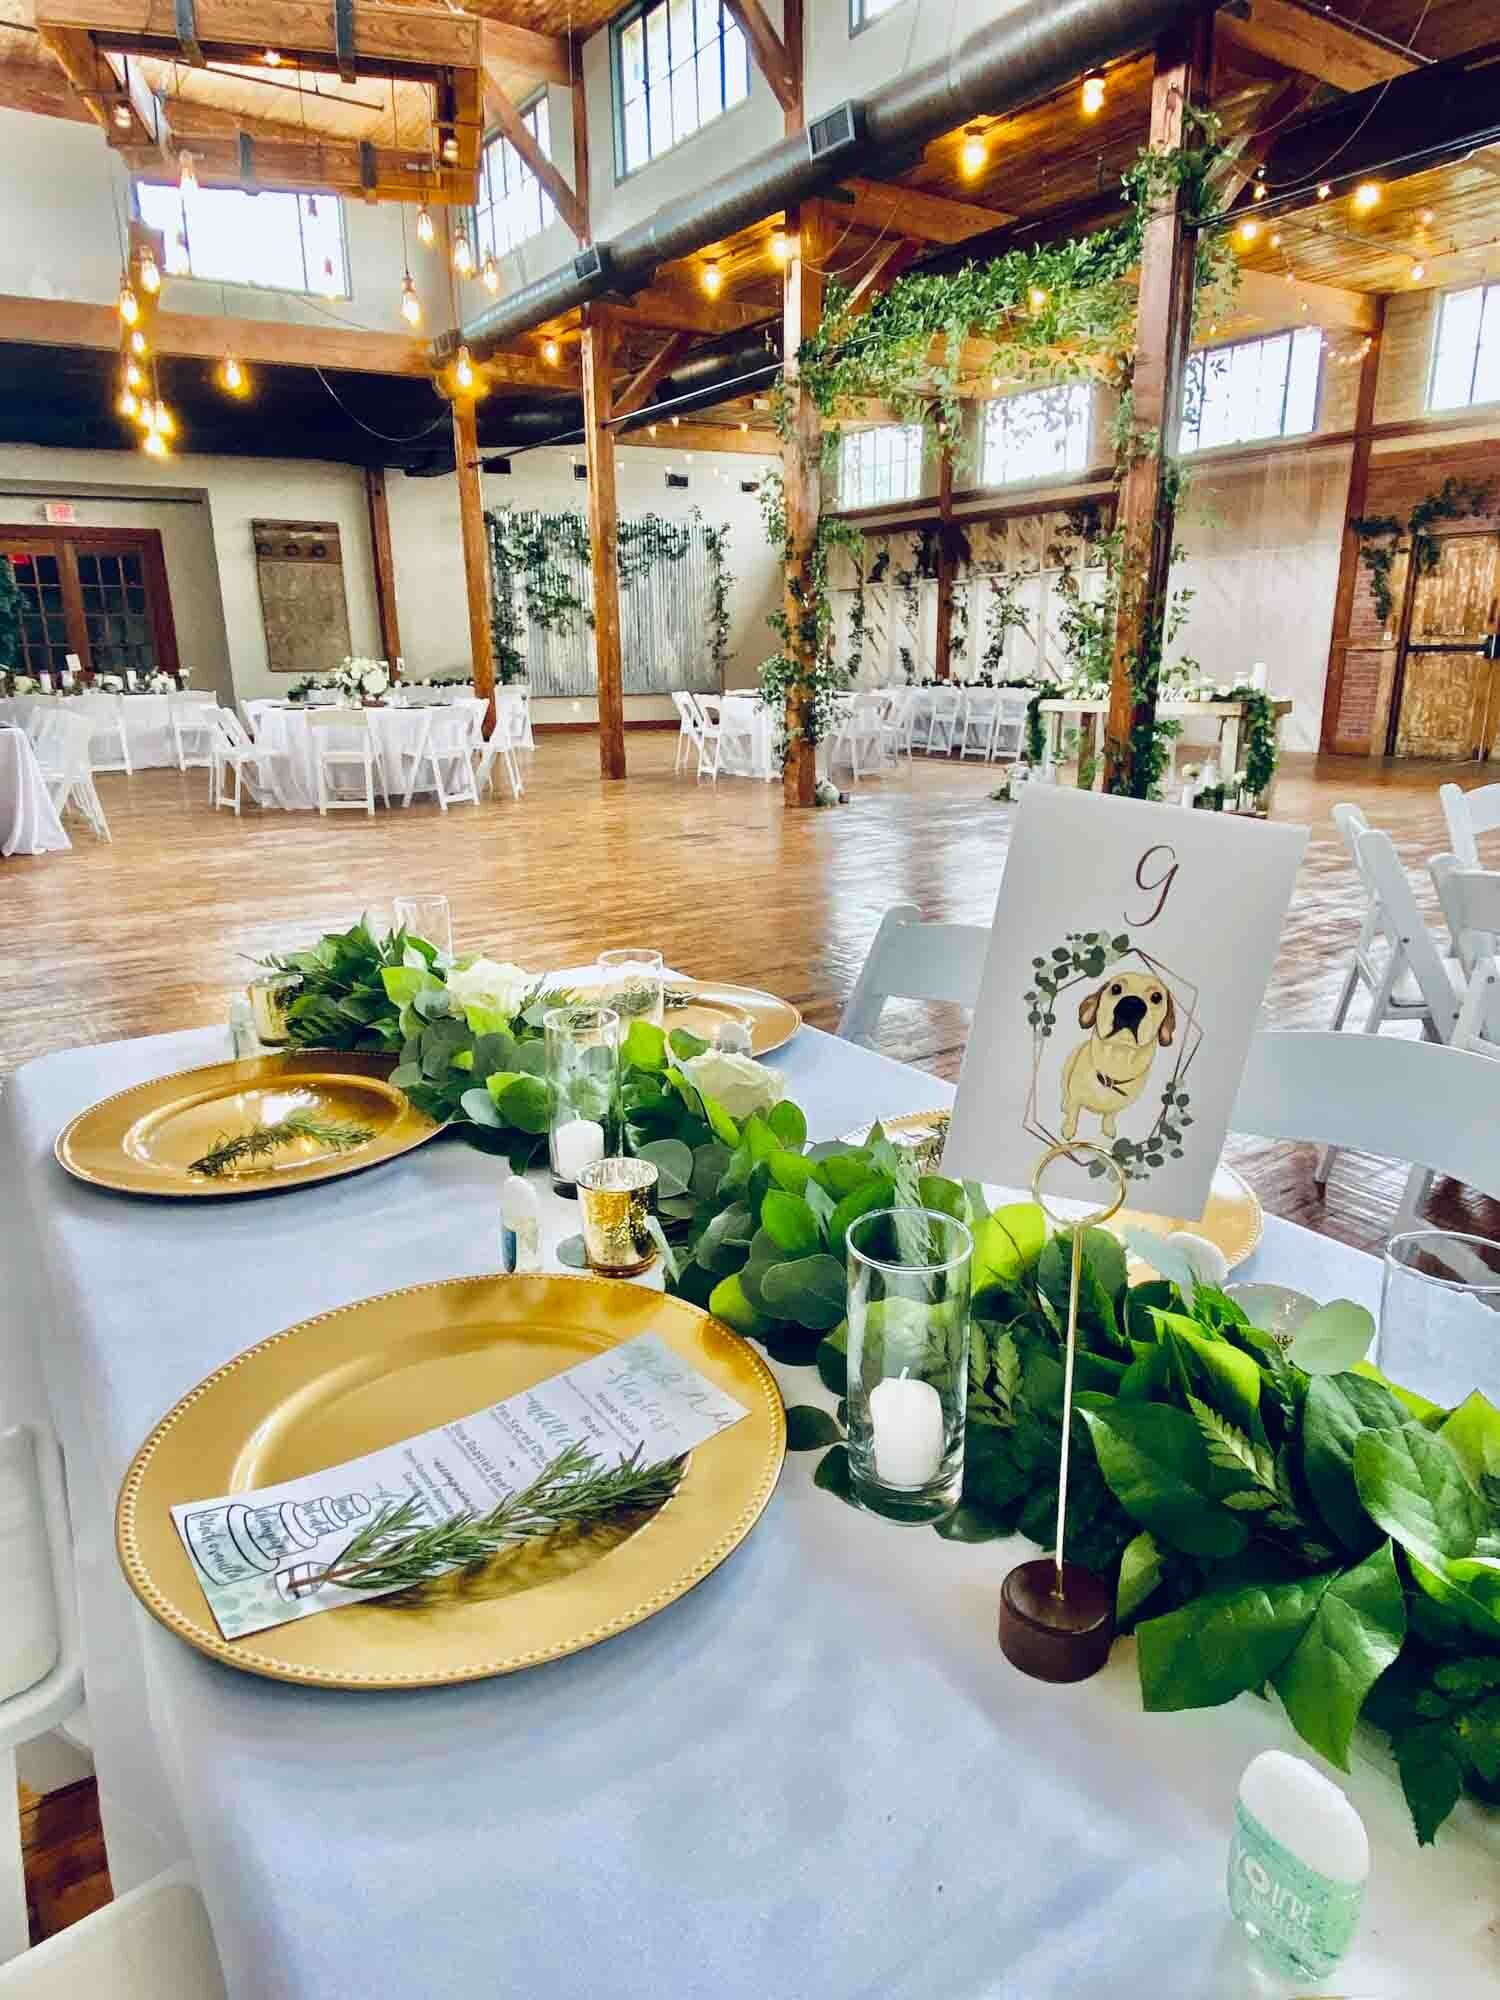 East-McKinney-Luxury-Wedding-Venue-Dallas-Fort-Worth-McKinney-Texas-123